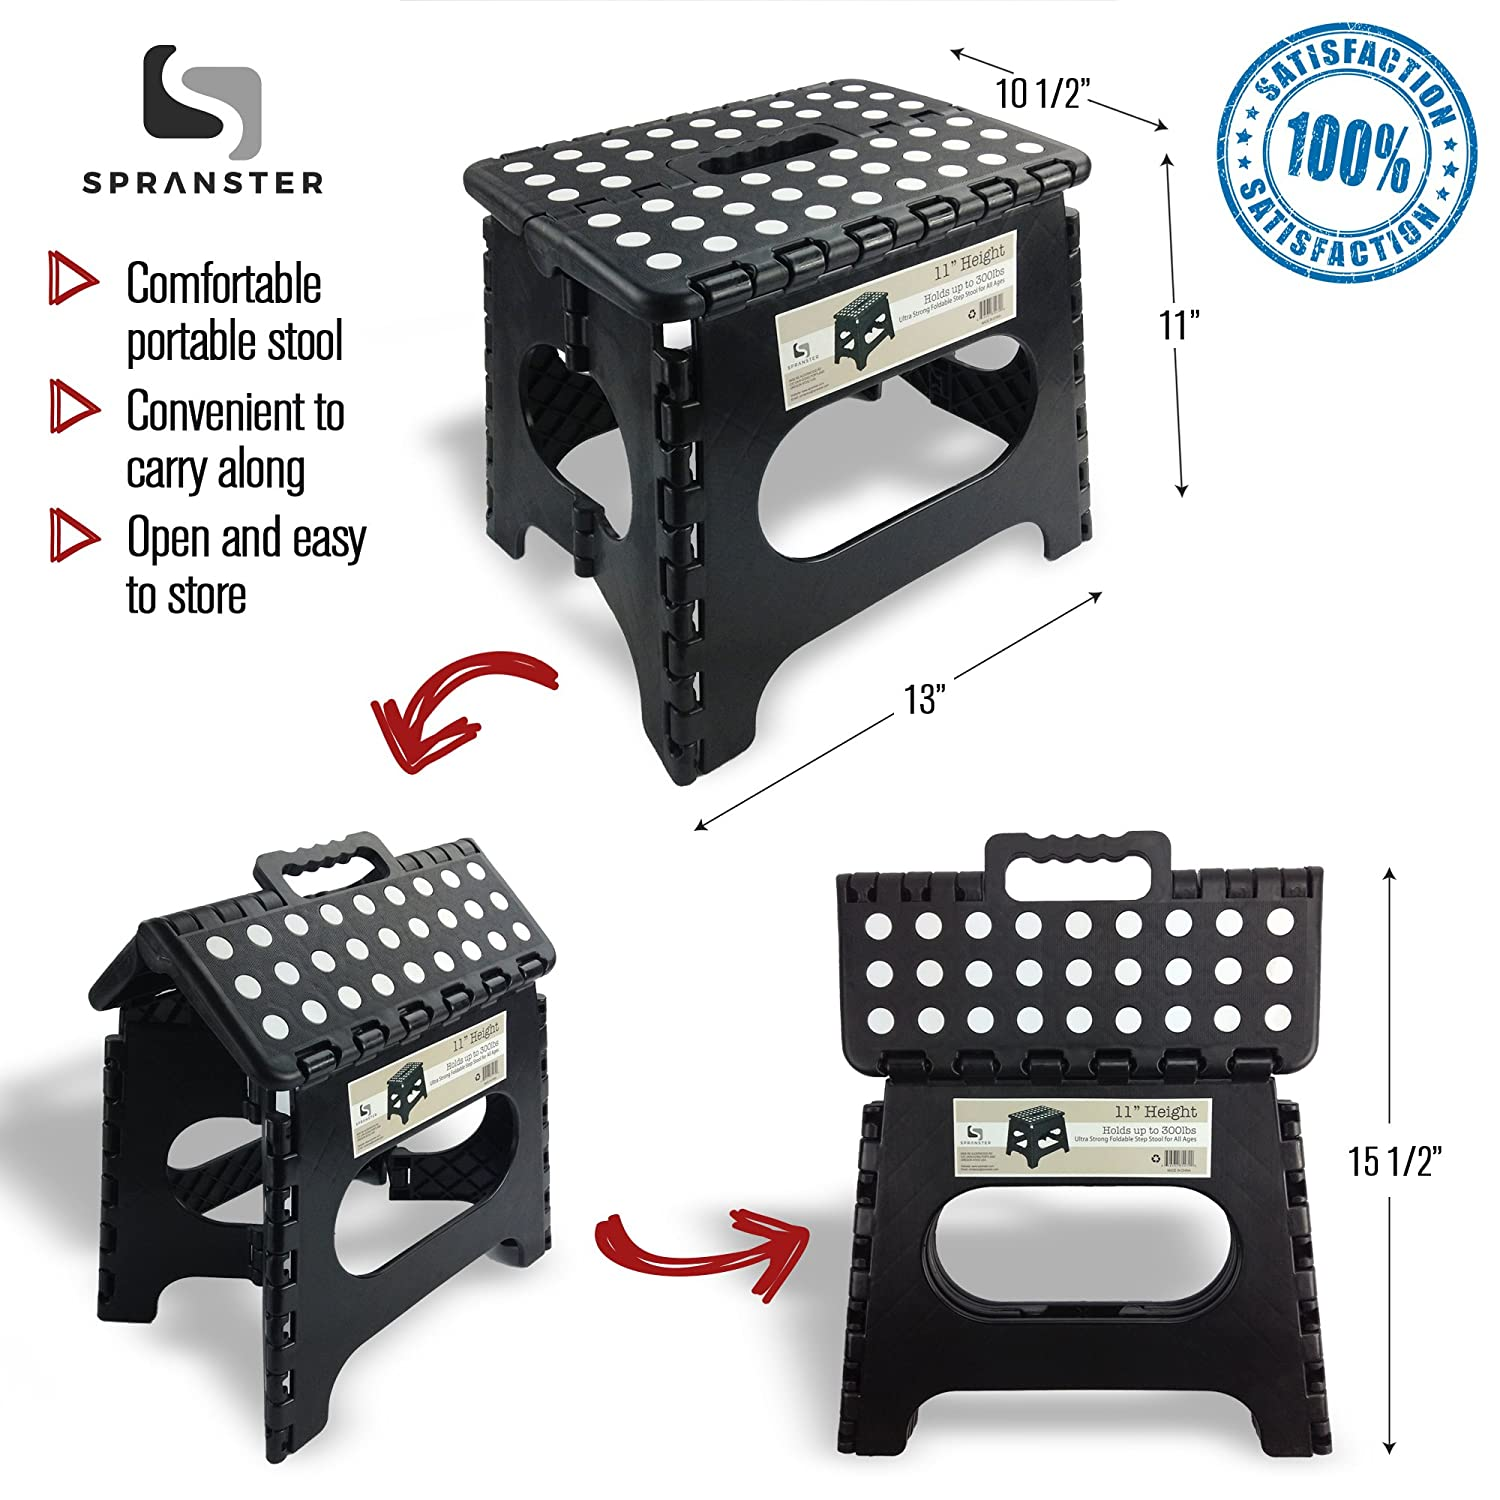 Amazon.com Super Strong Folding Step Stool - 11  Height - Holds up to 300 Lb - The lightweight foldable step stool is sturdy enough to support adults ...  sc 1 st  Amazon.com : folding step up stool - islam-shia.org